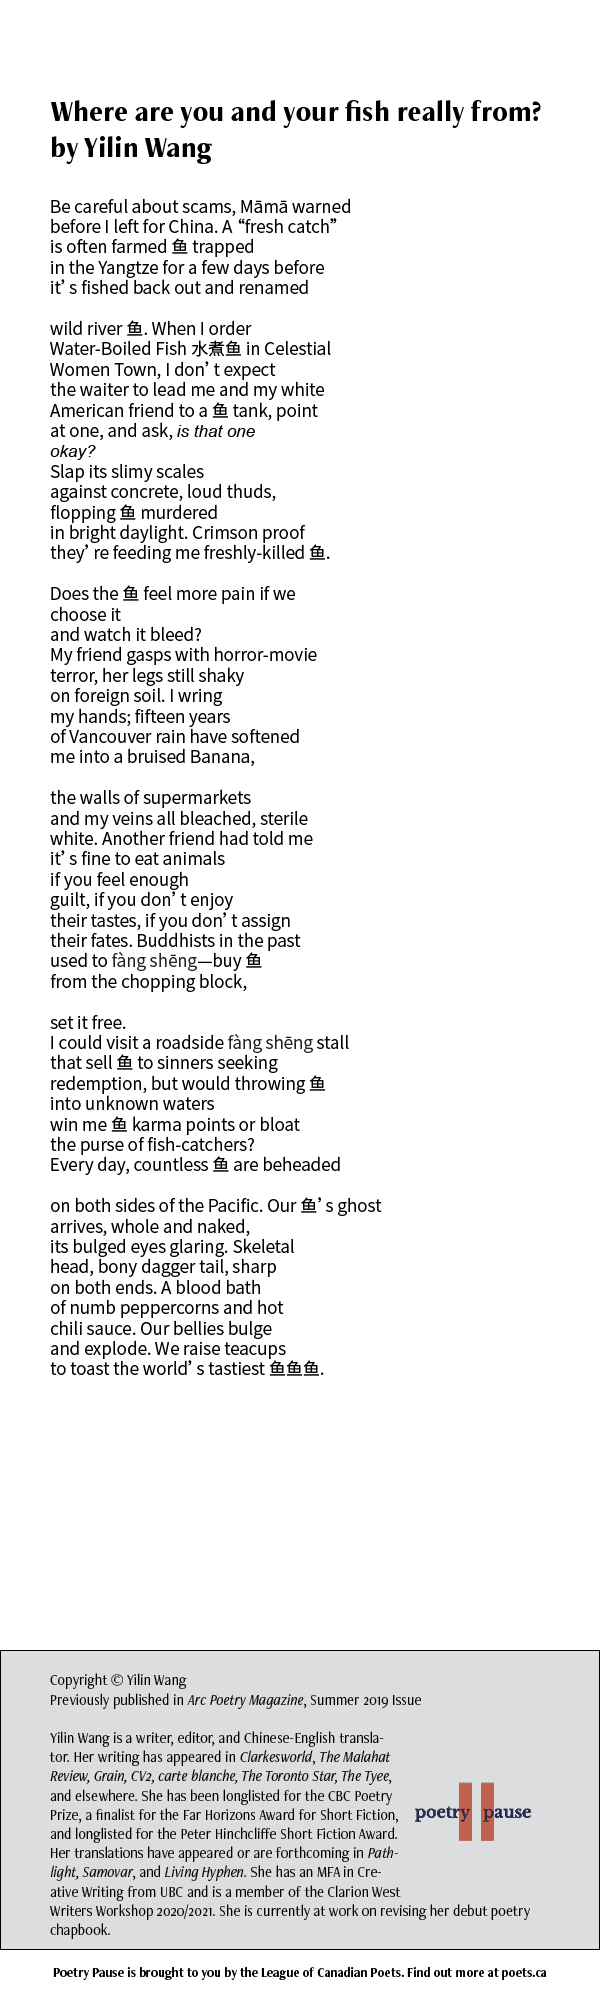 """Poet Name: Yilin Wang Poem Title: Where are you and your fish really from? Poem: Be careful about scams, Māmā warned before I left for China. A """"fresh catch"""" is often farmed 鱼 trapped in the Yangtze for a few days before it's fished back out and renamed wild river 鱼. When I order Water-Boiled Fish 水煮鱼 in Celestial Women Town, I don't expect the waiter to lead me and my white American friend to a 鱼 tank, point at one, and ask, is that one okay? Slap its slimy scales against concrete, loud thuds, flopping 鱼 murdered in bright daylight. Crimson proof they're feeding me freshly-killed 鱼. Does the 鱼 feel more pain if we choose it and watch it bleed? My friend gasps with horror-movie terror, her legs still shaky on foreign soil. I wring my hands; fifteen years of Vancouver rain have softened me into a bruised Banana, the walls of supermarkets and my veins all bleached, sterile white. Another friend had told me it's fine to eat animals if you feel enough guilt, if you don't enjoy their tastes, if you don't assign their fates. Buddhists in the past used to fàng shēng—buy 鱼 from the chopping block, set it free. I could visit a roadside fàng shēng stall that sell 鱼 to sinners seeking redemption, but would throwing 鱼 into unknown waters win me 鱼 karma points or bloat the purse of fish-catchers? Every day, countless 鱼 are beheaded on both sides of the Pacific. Our 鱼's ghost arrives, whole and naked, its bulged eyes glaring. Skeletal head, bony dagger tail, sharp on both ends. A blood bath of numb peppercorns and hot chili sauce. Our bellies bulge and explode. We raise teacups to toast the world's tastiest 鱼鱼鱼. End of Poem. Credits: Copyright © Yilin Wang Previously published in Arc Poetry Magazine, Summer 2019 Issue Yilin Wang is a writer, editor, and Chinese-English translator. Her writing has appeared in Clarkesworld, The Malahat Review, Grain, CV2, carte blanche, The Toronto Star, The Tyee, and elsewhere. She has been longlisted for the CBC Poetry Prize, a finalist for the F"""